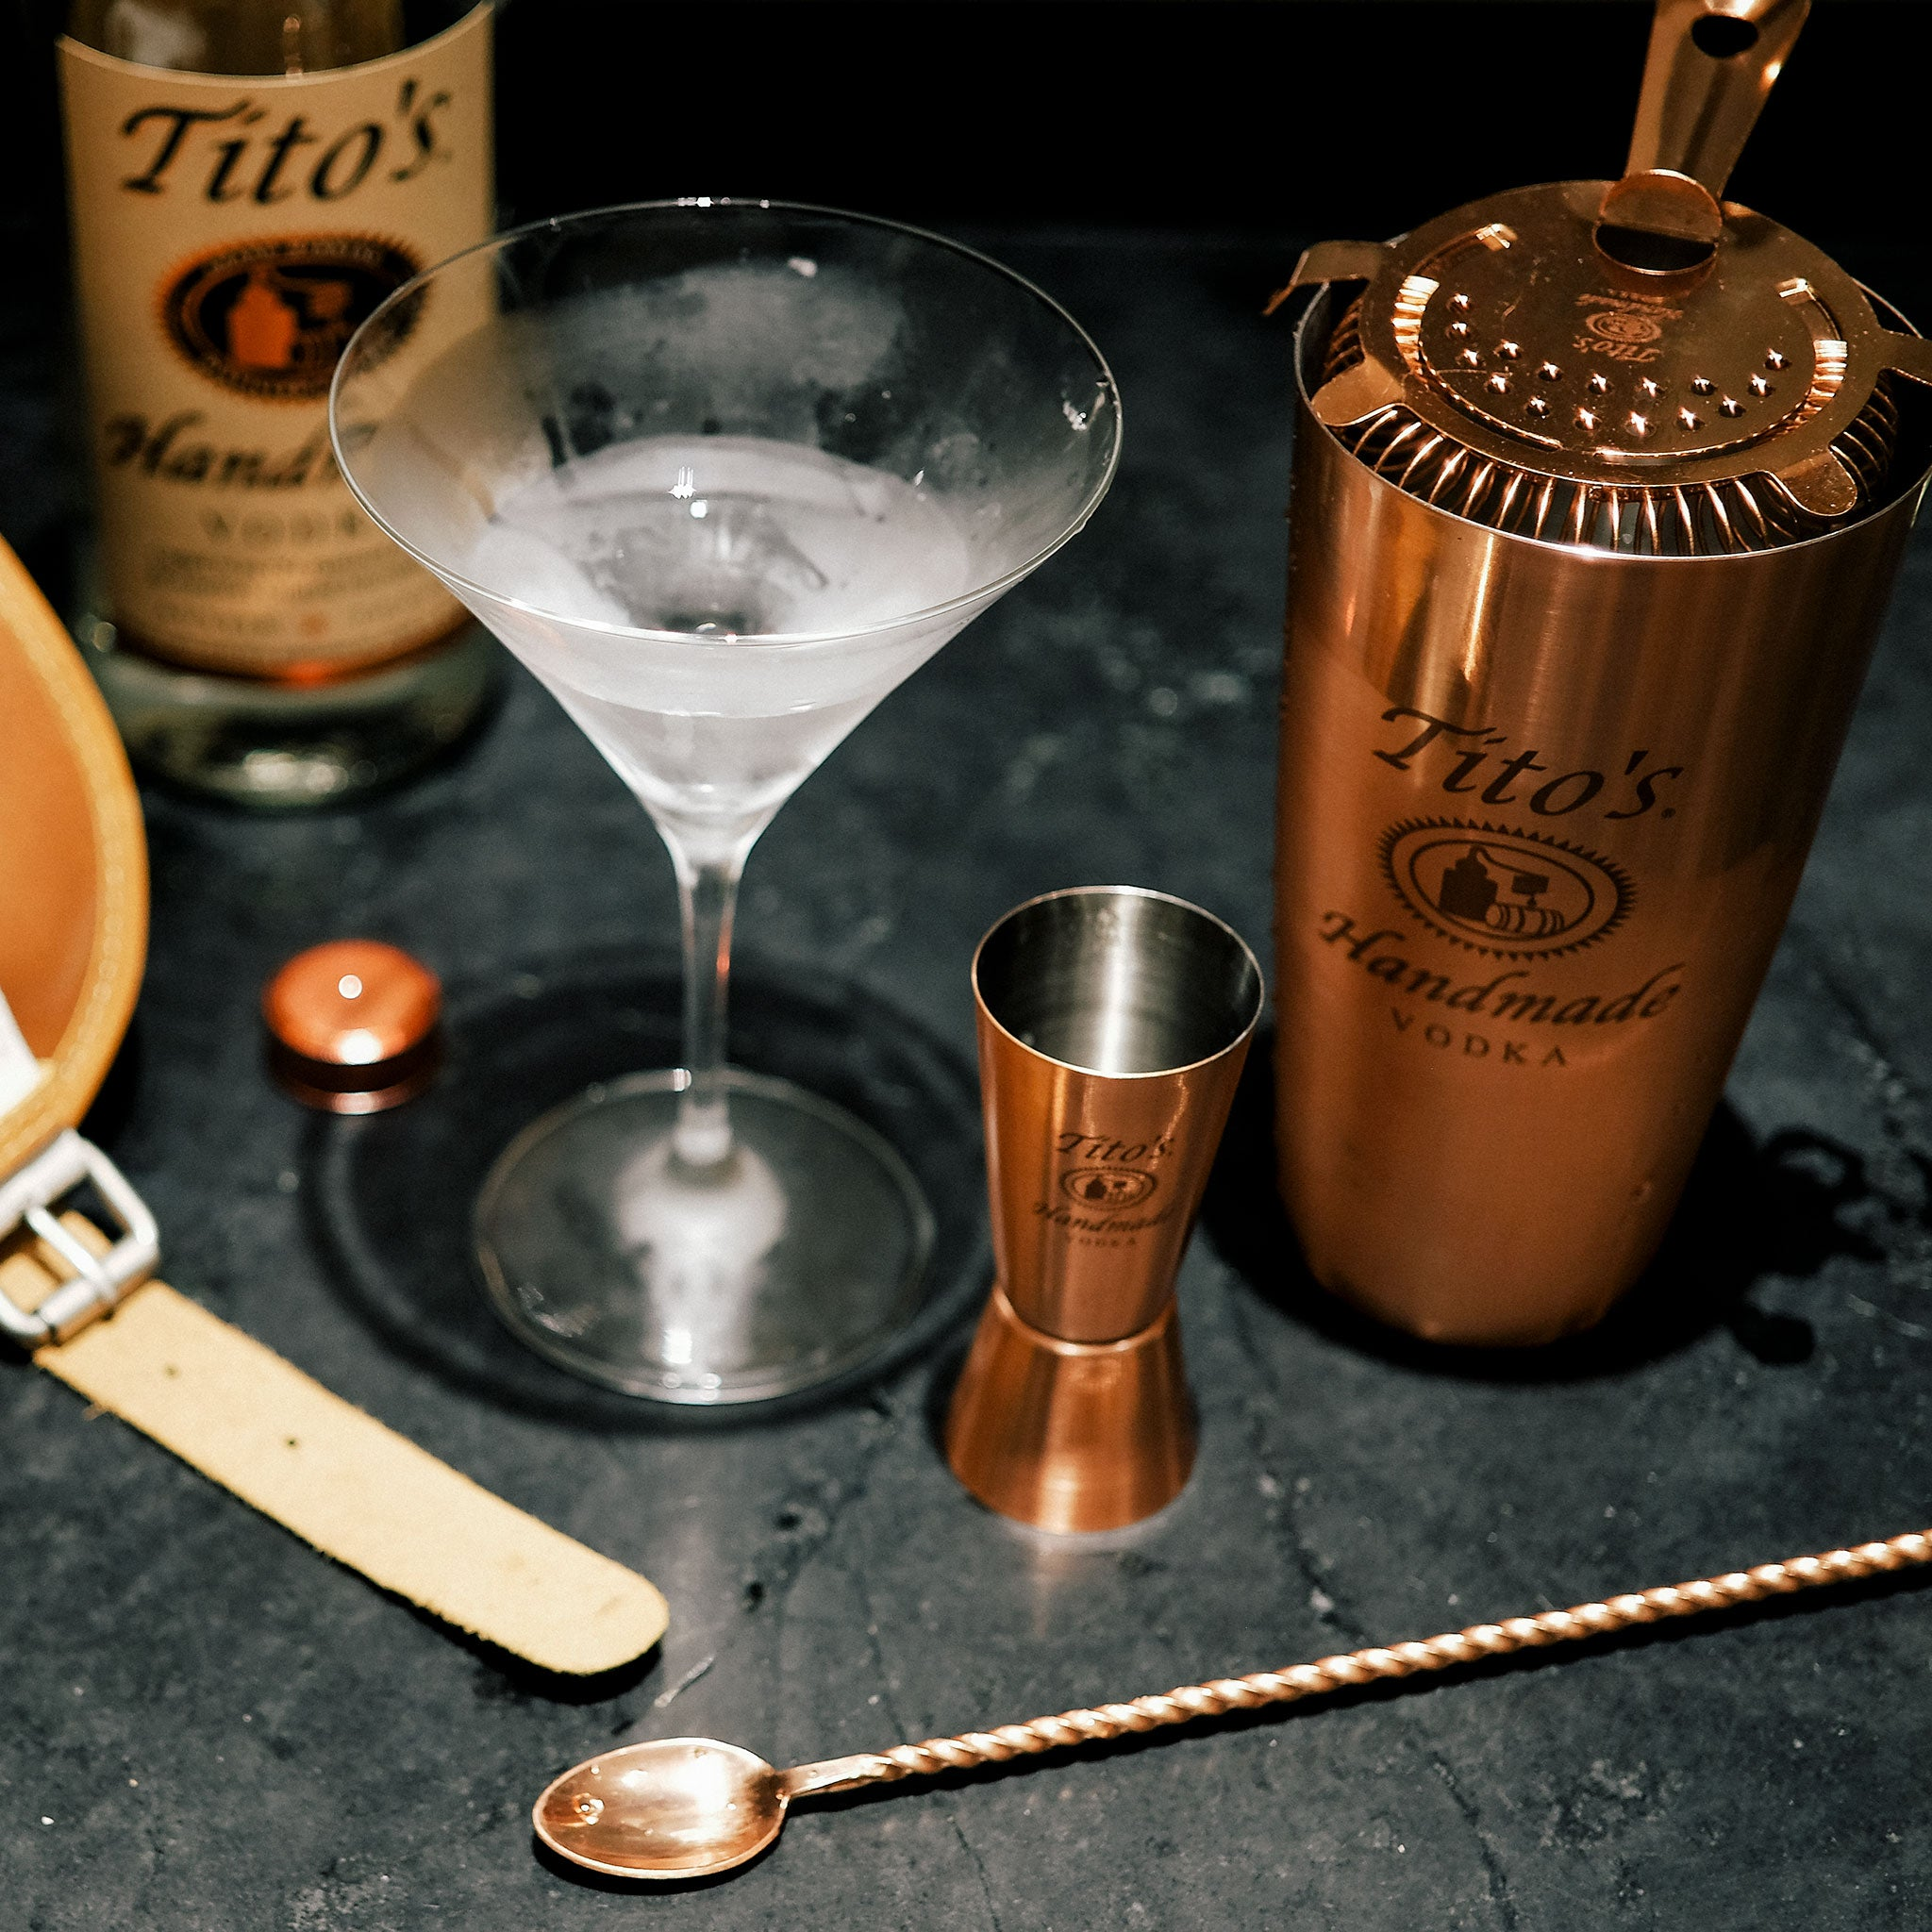 Tito's Handmade Vodka bottle with martini and copper bar tools